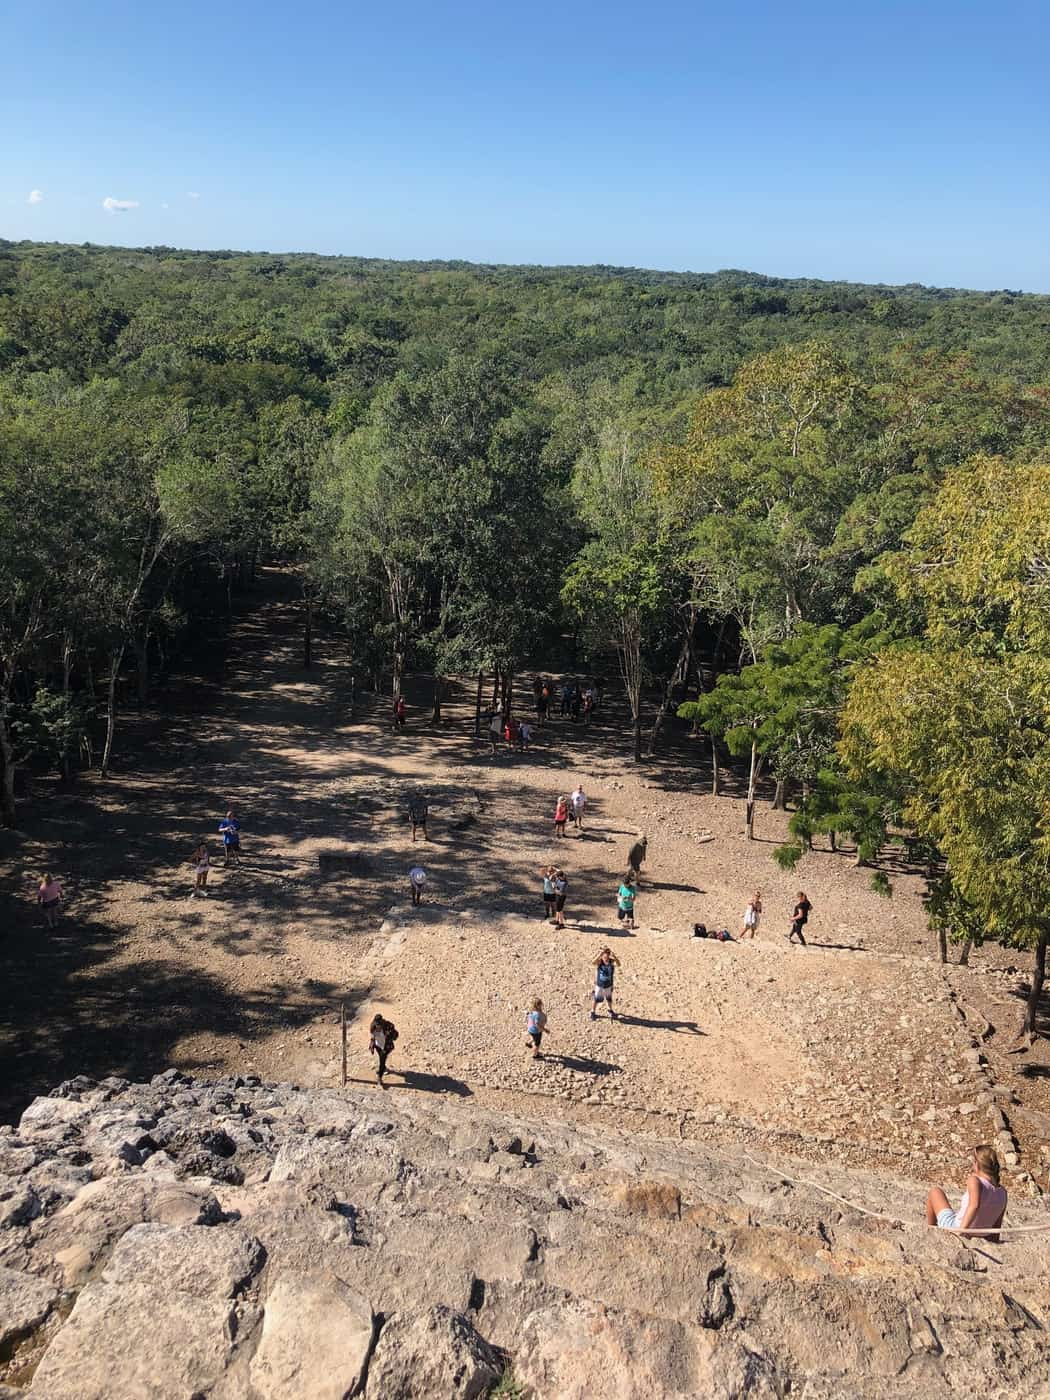 View from halfway up of Coba pyramid